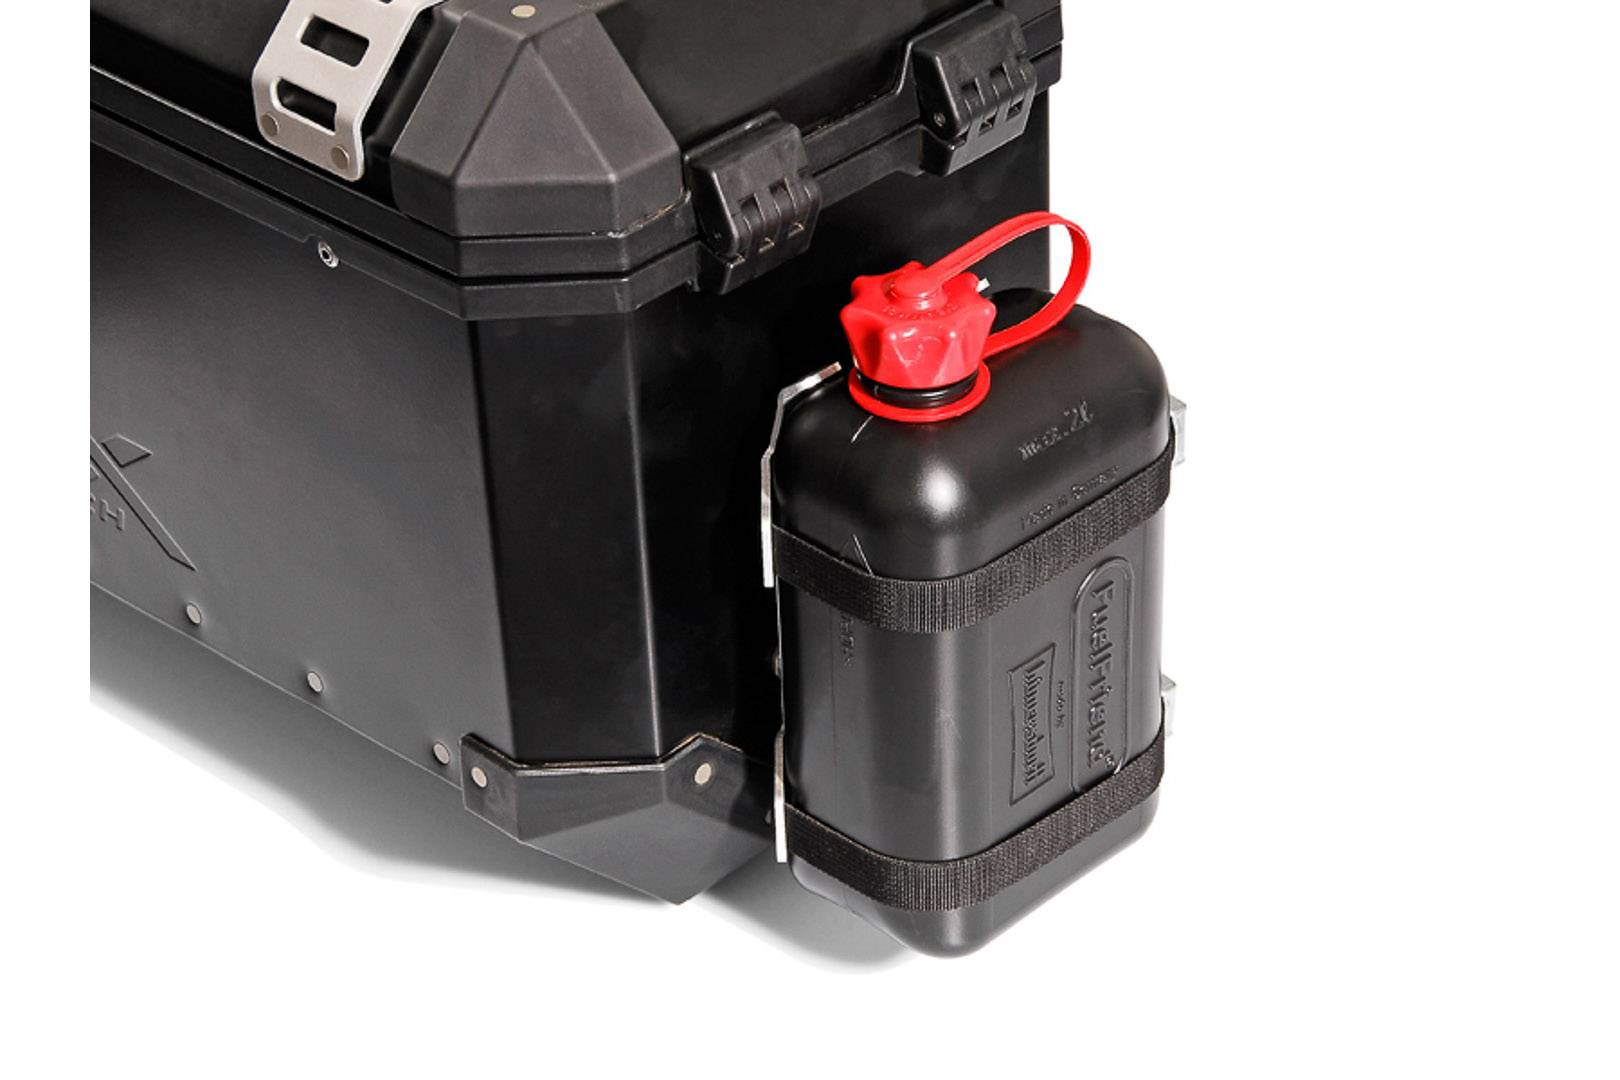 SW-Motech TRAX canister kit - For TRAX accessory mount. Incl. 2 l canister. canister kit for TRAX accessory mount Incl. 2 L canister